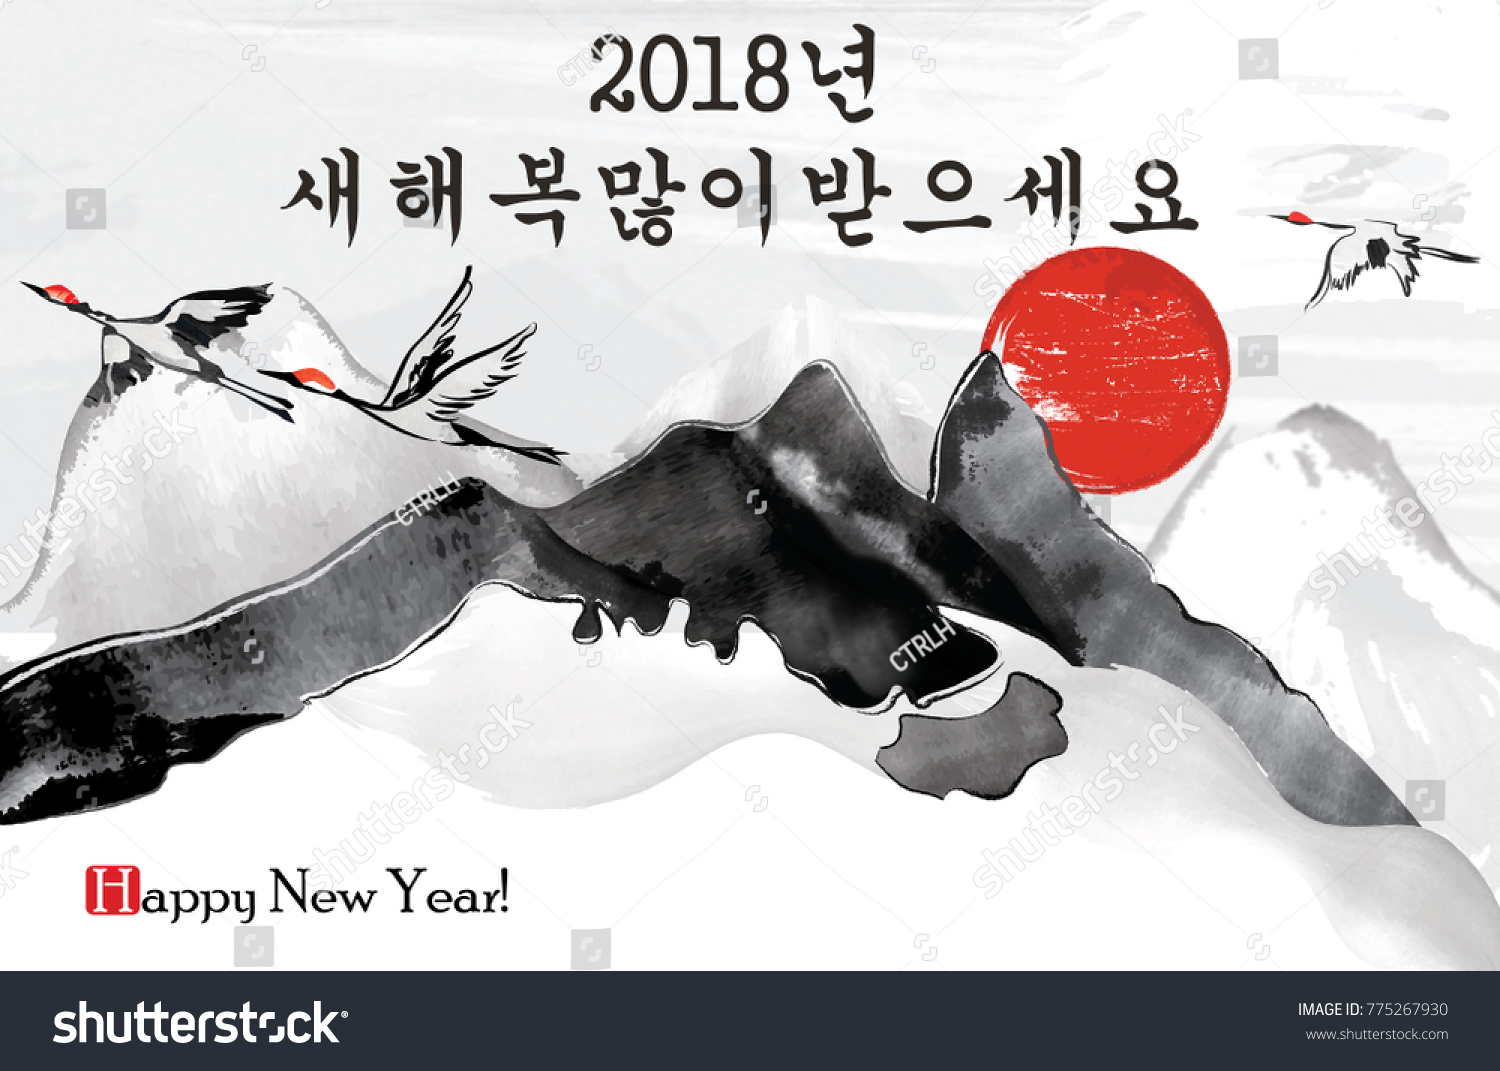 Happy new year 2018 korean greeting stock illustration 775267930 happy new year 2018 korean greeting card for the end of the year korean m4hsunfo Images